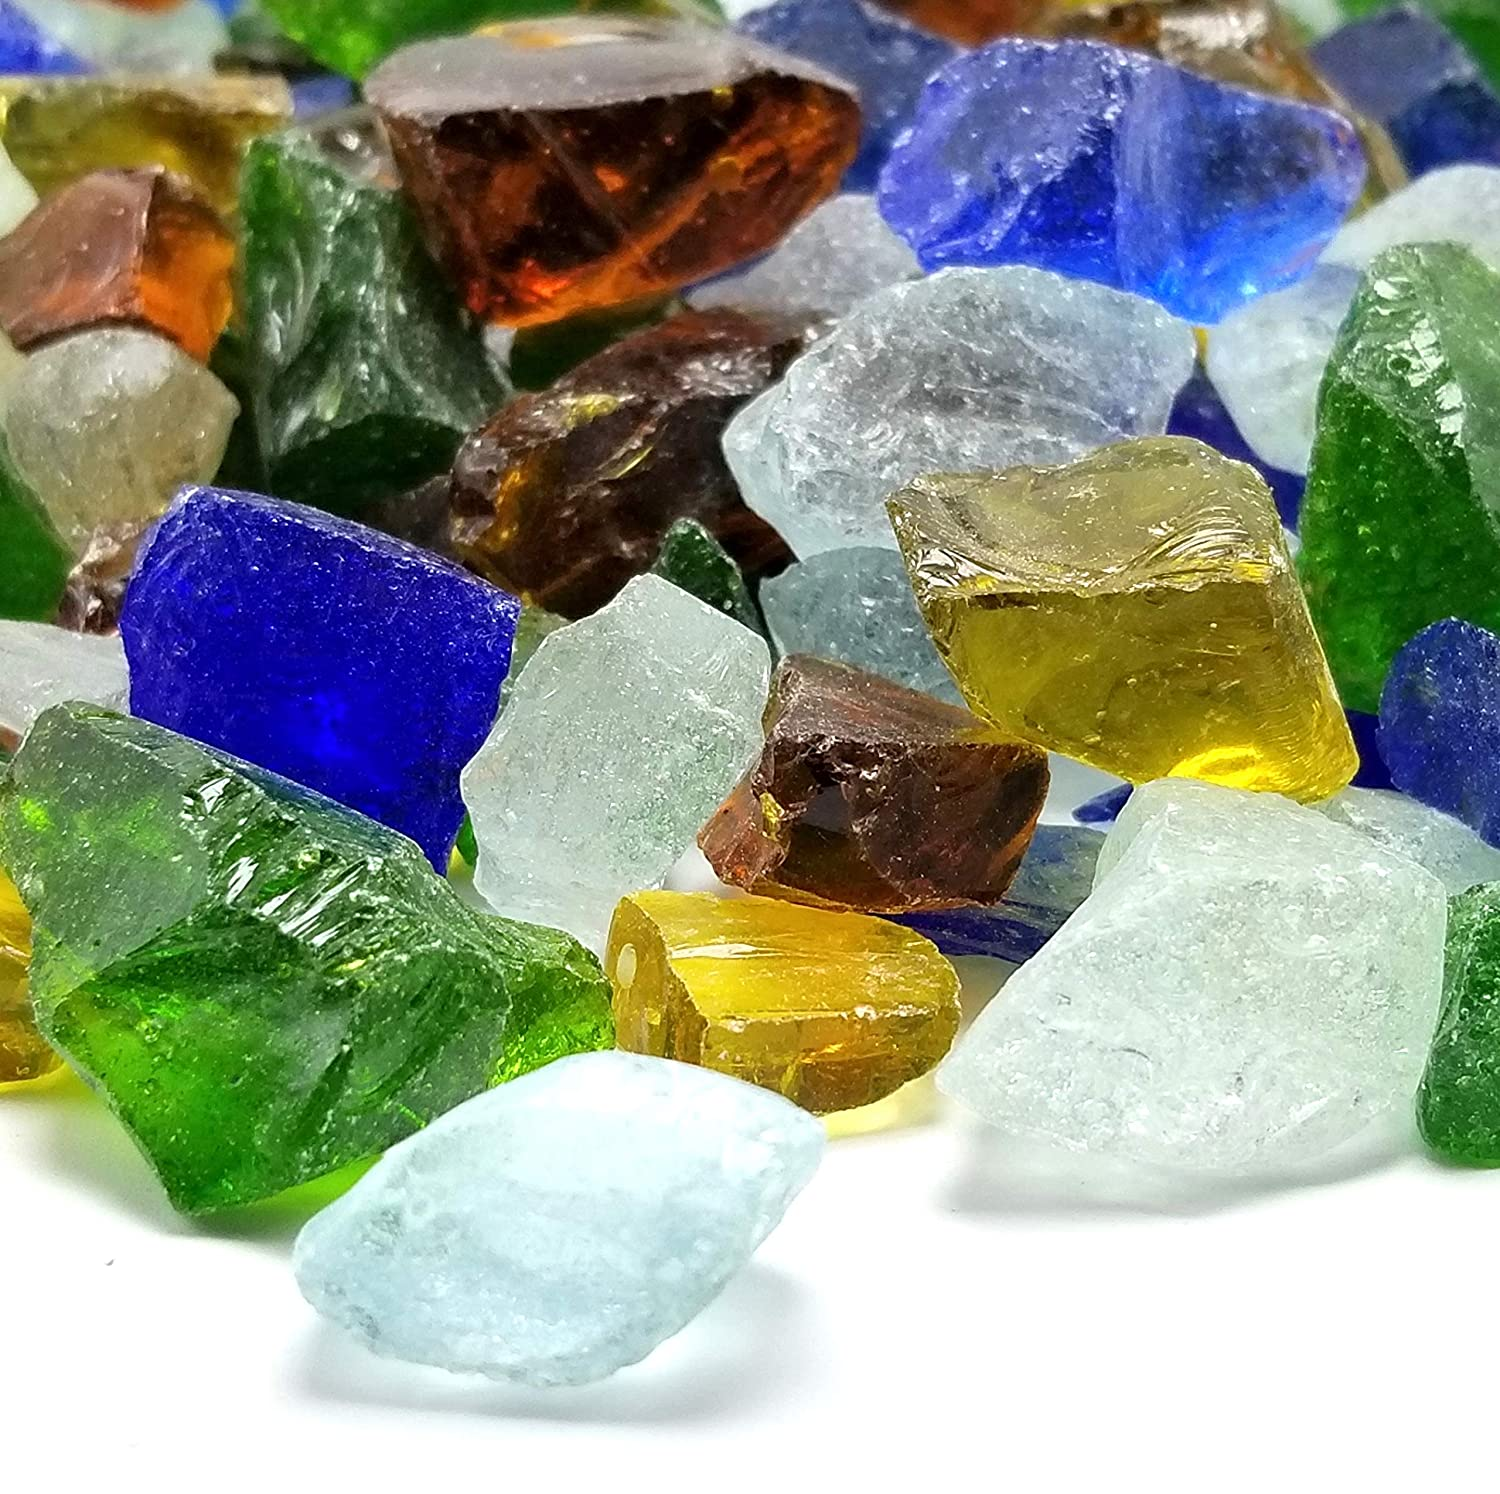 VIVID Heat - Sea Glass Blend Premium Outdoor Crushed Fire Glass Rock (5-Pound) Large 1/2, 3/4 & 1 inch Chunky Blended Glass Fire Pit, Fire Place & More, Beach Glass (Green, Amber, Blue, Clear)